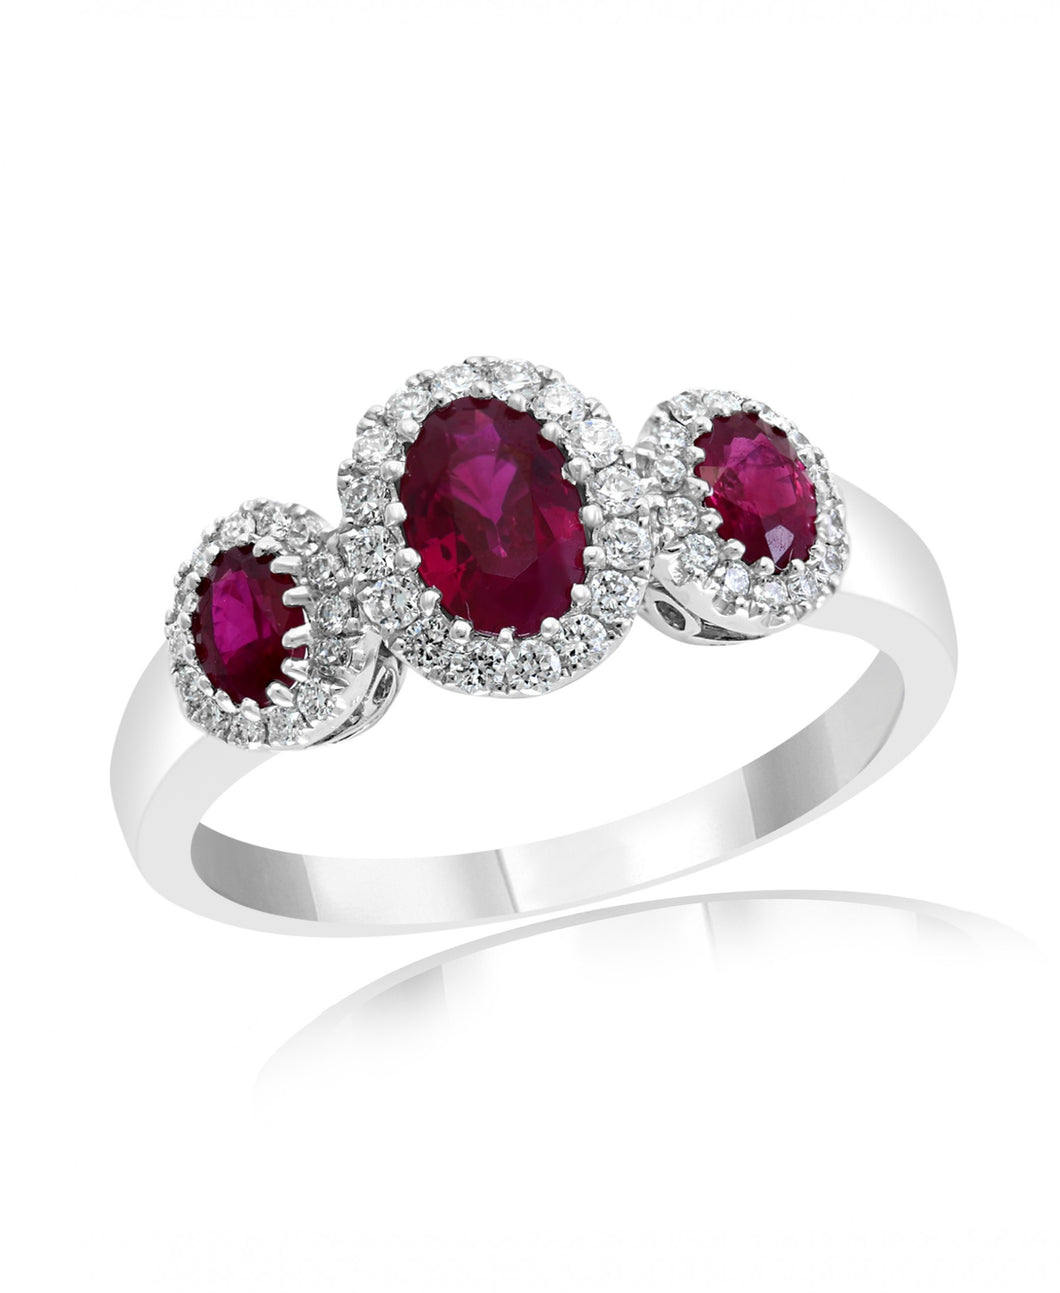 14K White Gold Ruby & Diamond Halo Three Stone Ring